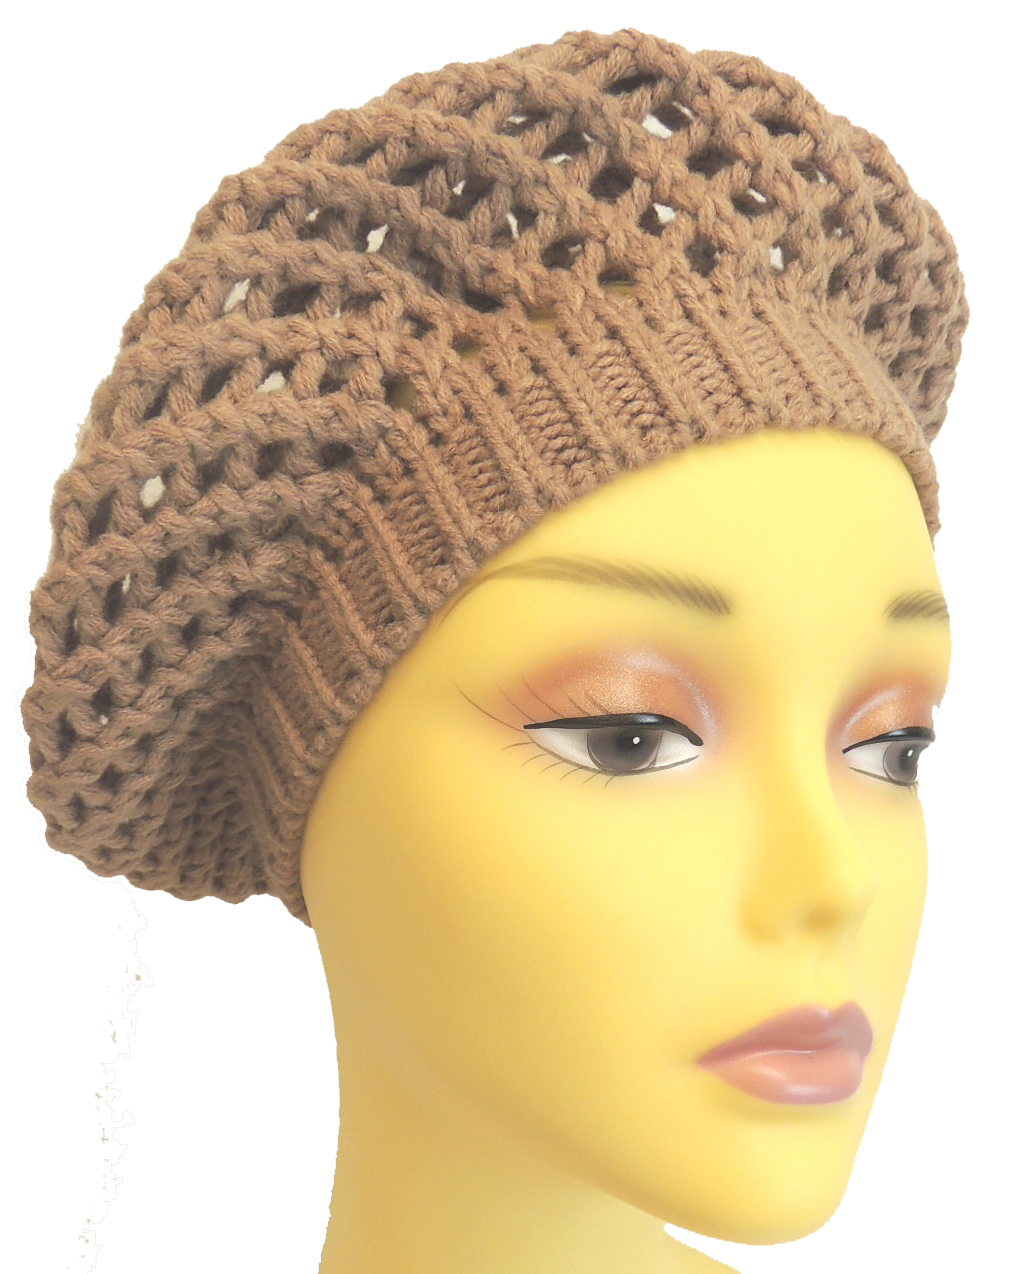 Women's Vintage Hats | Old Fashioned Hats | Retro Hats    New Vintage WWII 1940's Style Homefront Victory Classic Crochet Beret Snood $8.99 AT vintagedancer.com